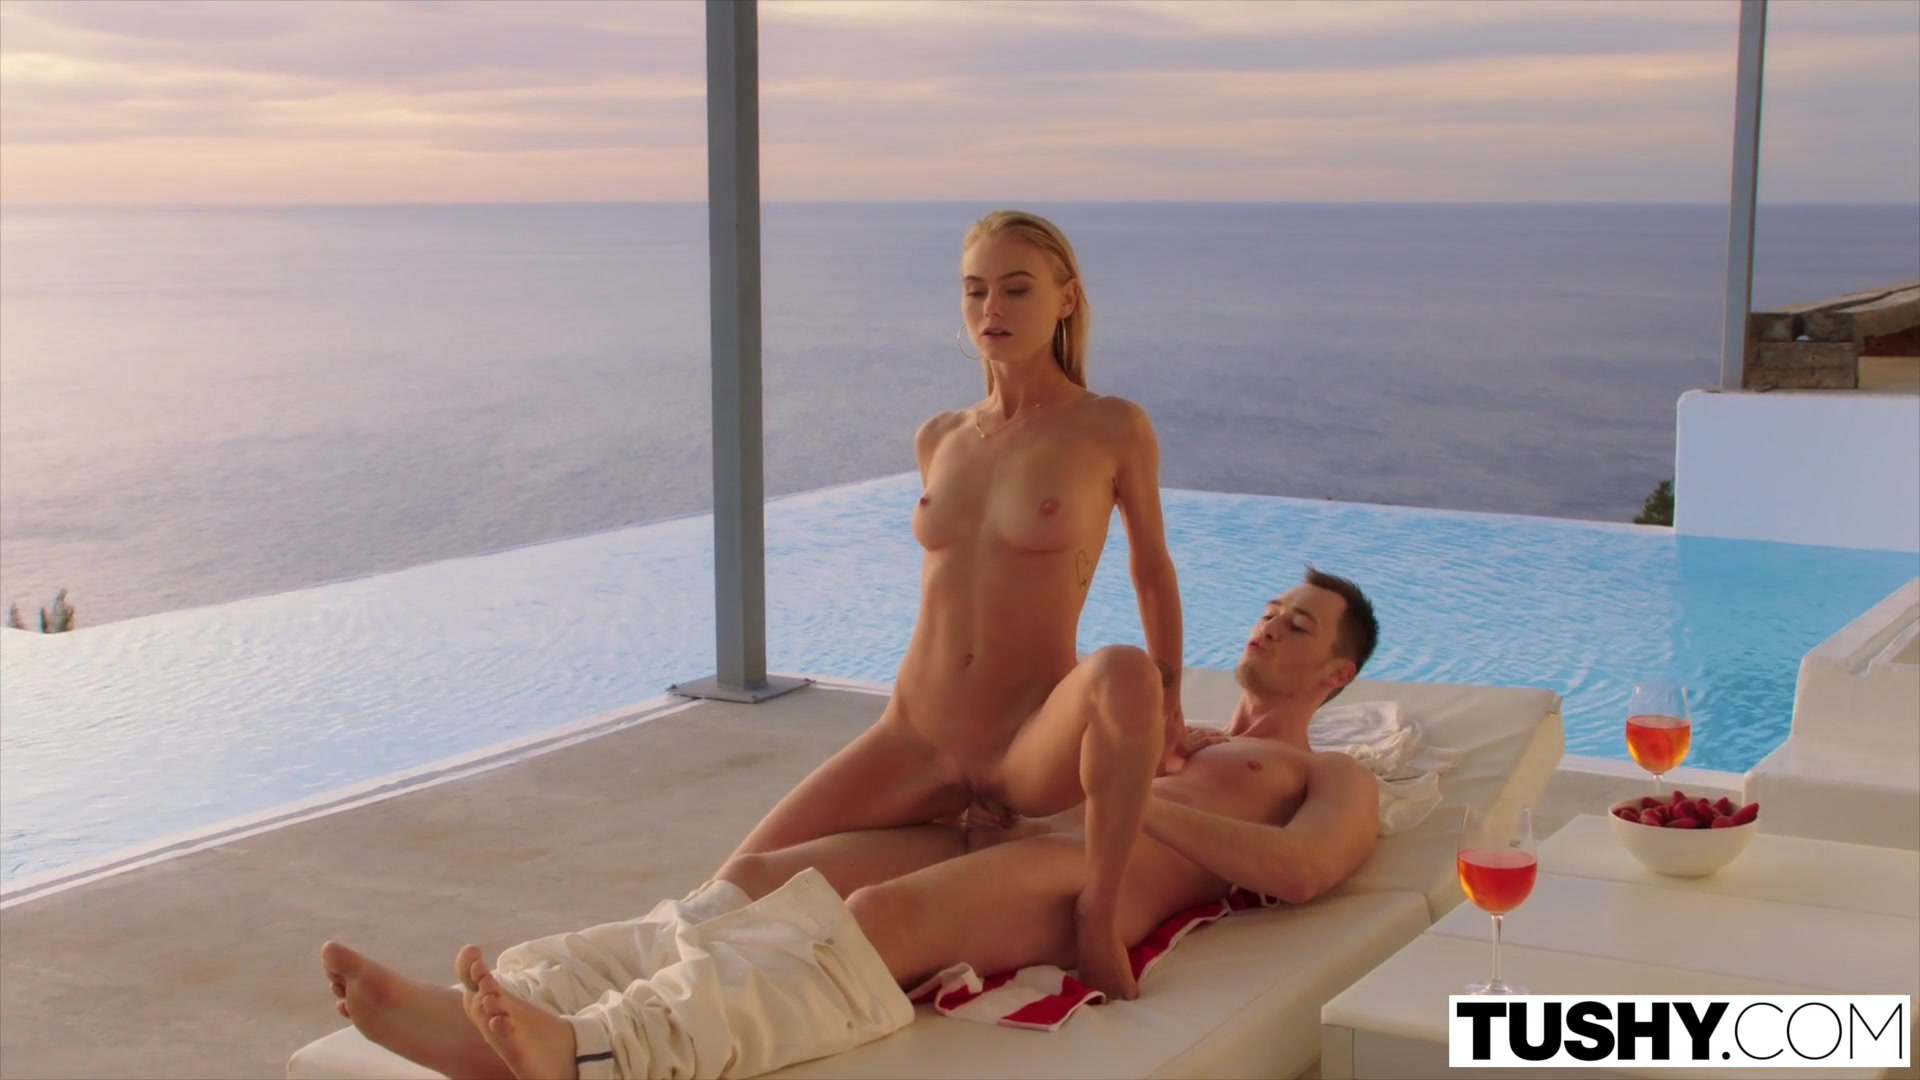 Hot xXx Video Dating female executives at work